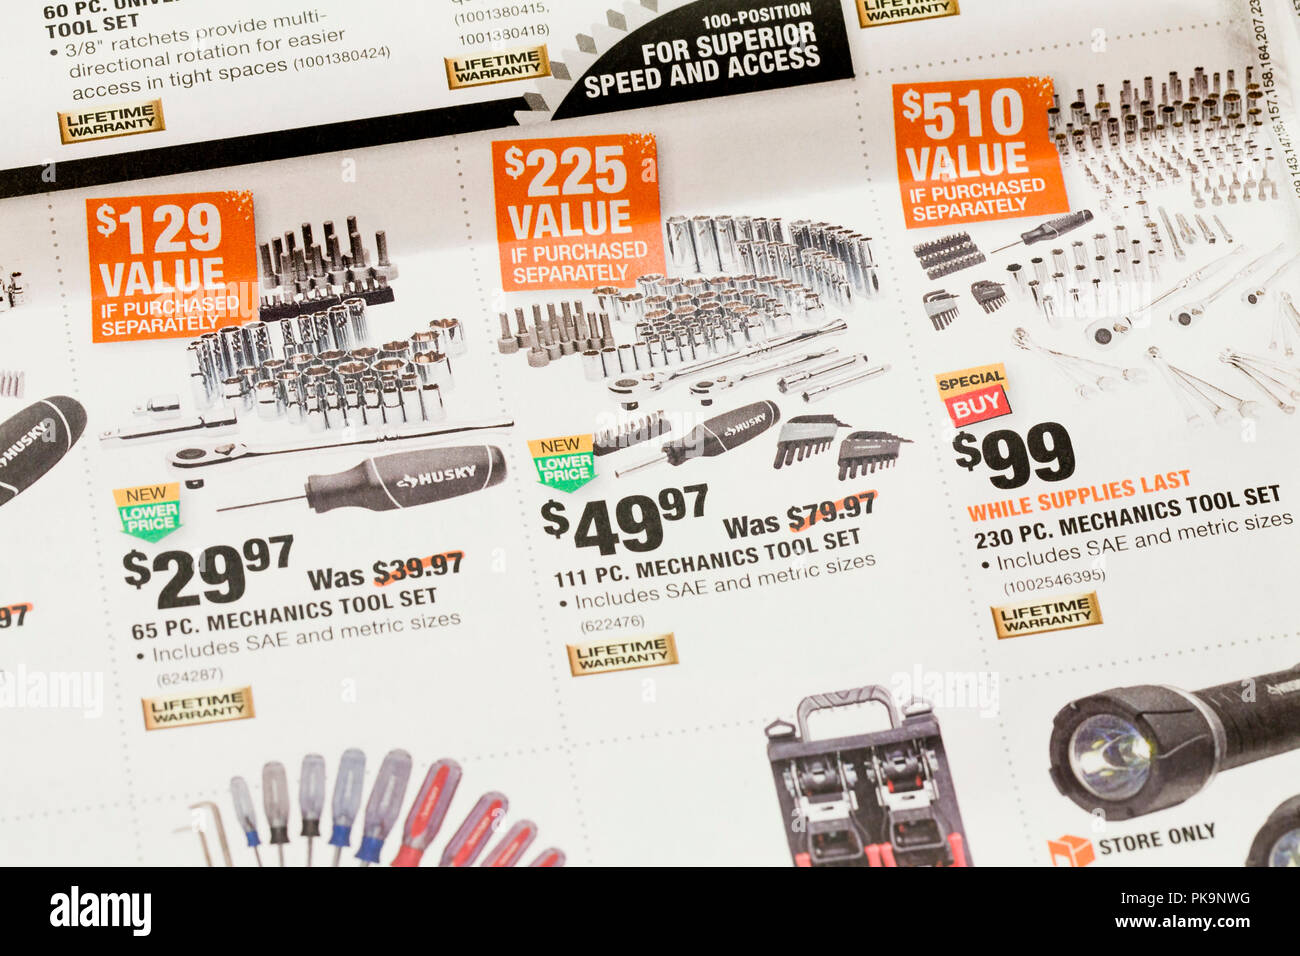 Weekly mailer advertisement from Home Depot (hardware store) - USA - Stock Image